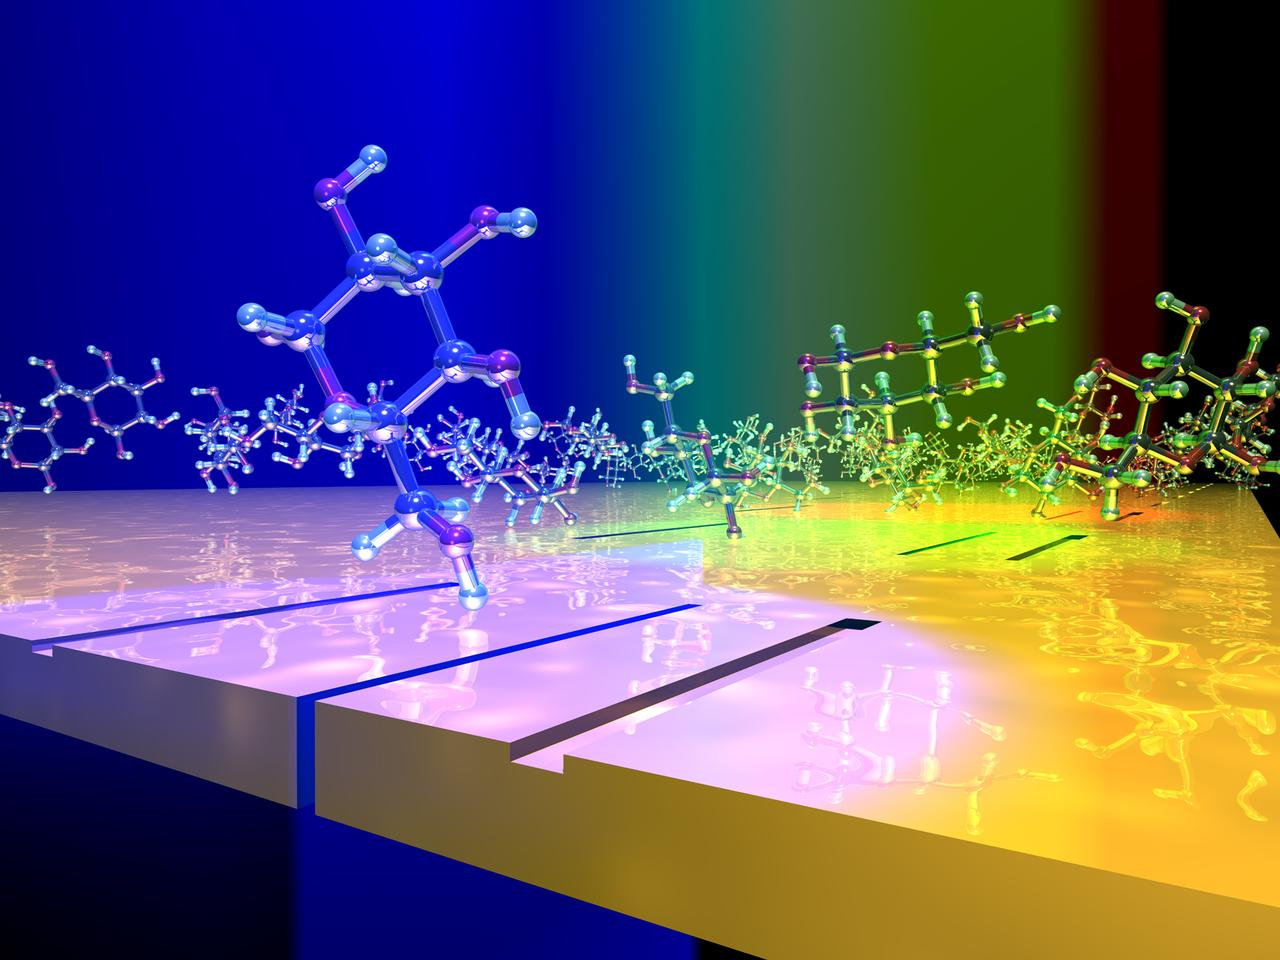 A depiction of glucose molecules moving across the surface of a plasmonic interferometer